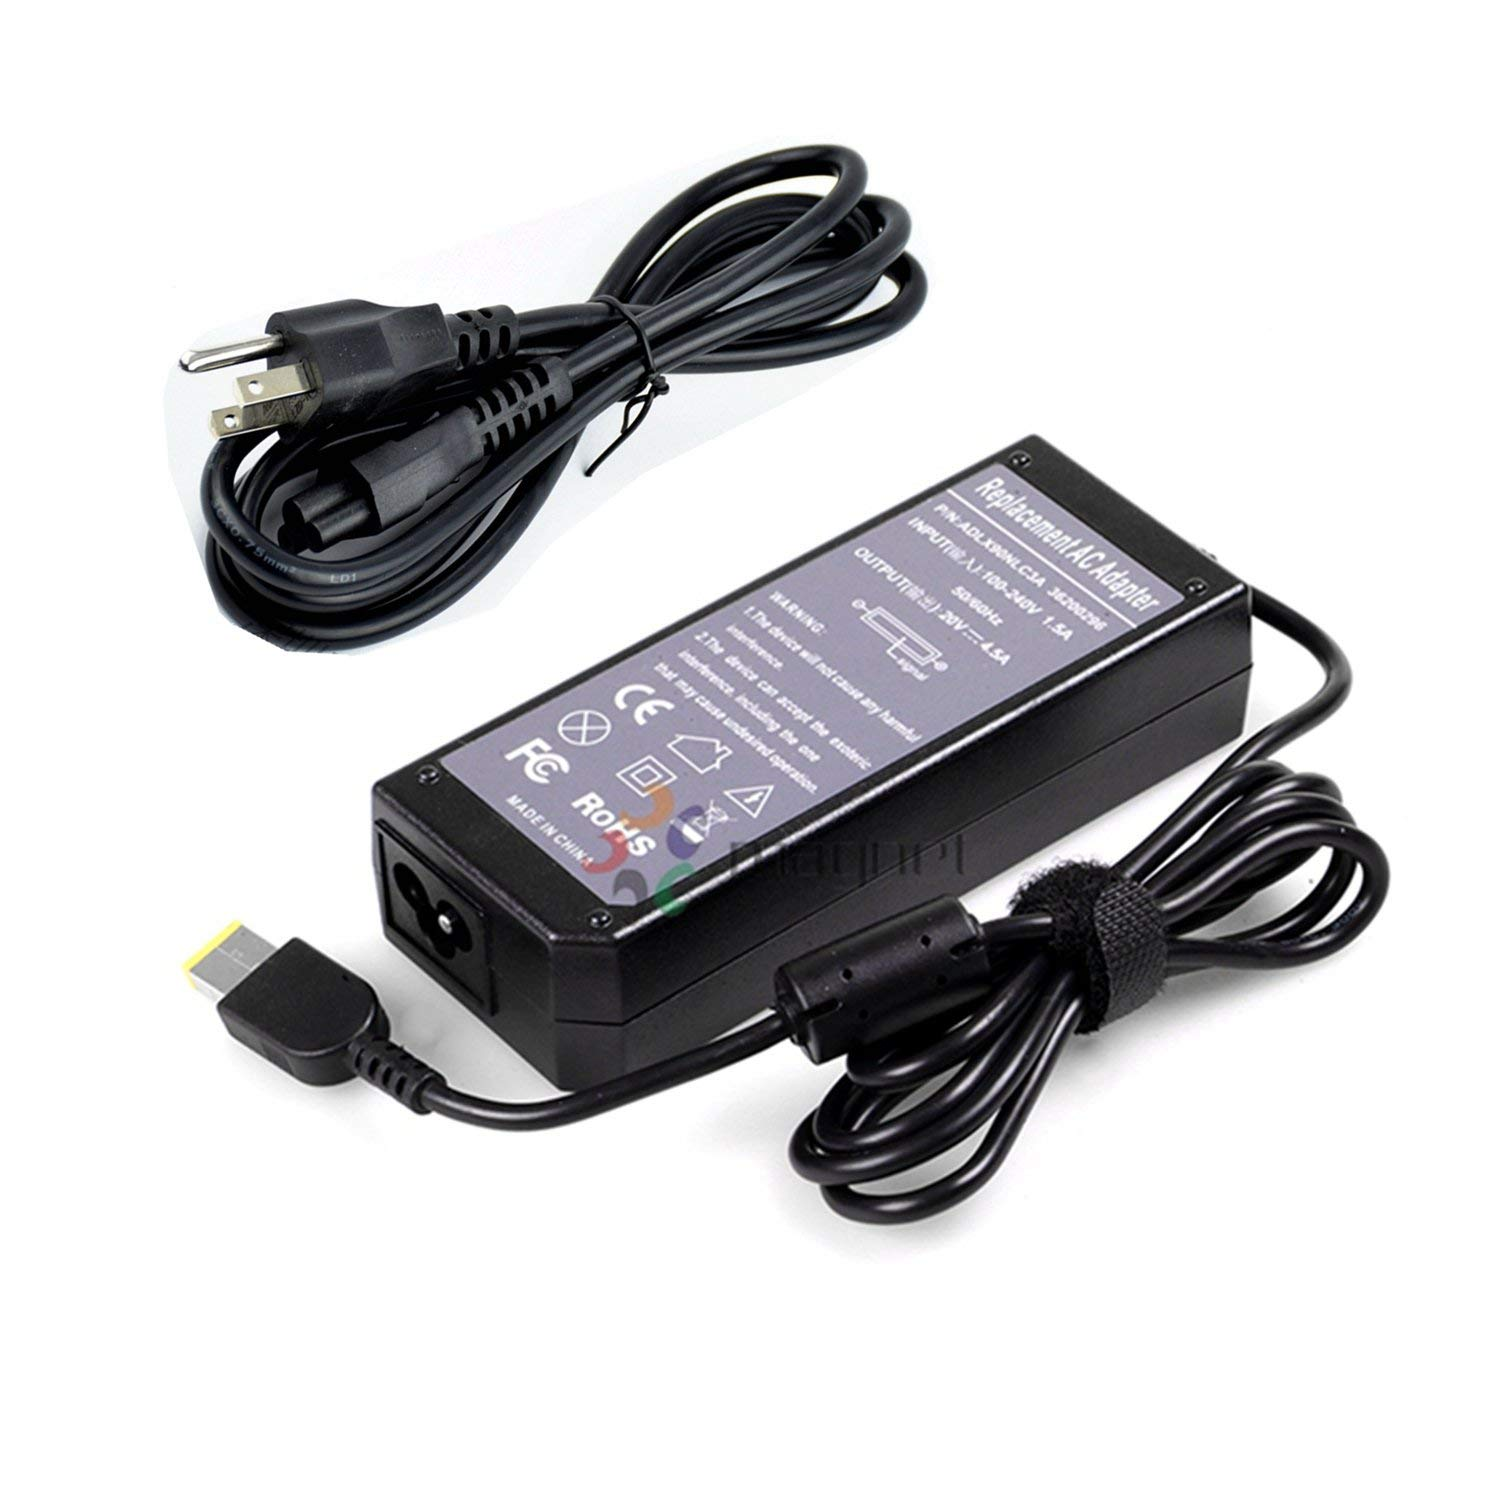 20V 4.5A 90W Power Supply Adapter Charger for Lenovo ThinkPad X1 Carbon 3444-CUU Slim Tip 0B46994T440 T440p T440S g700 With US Cable